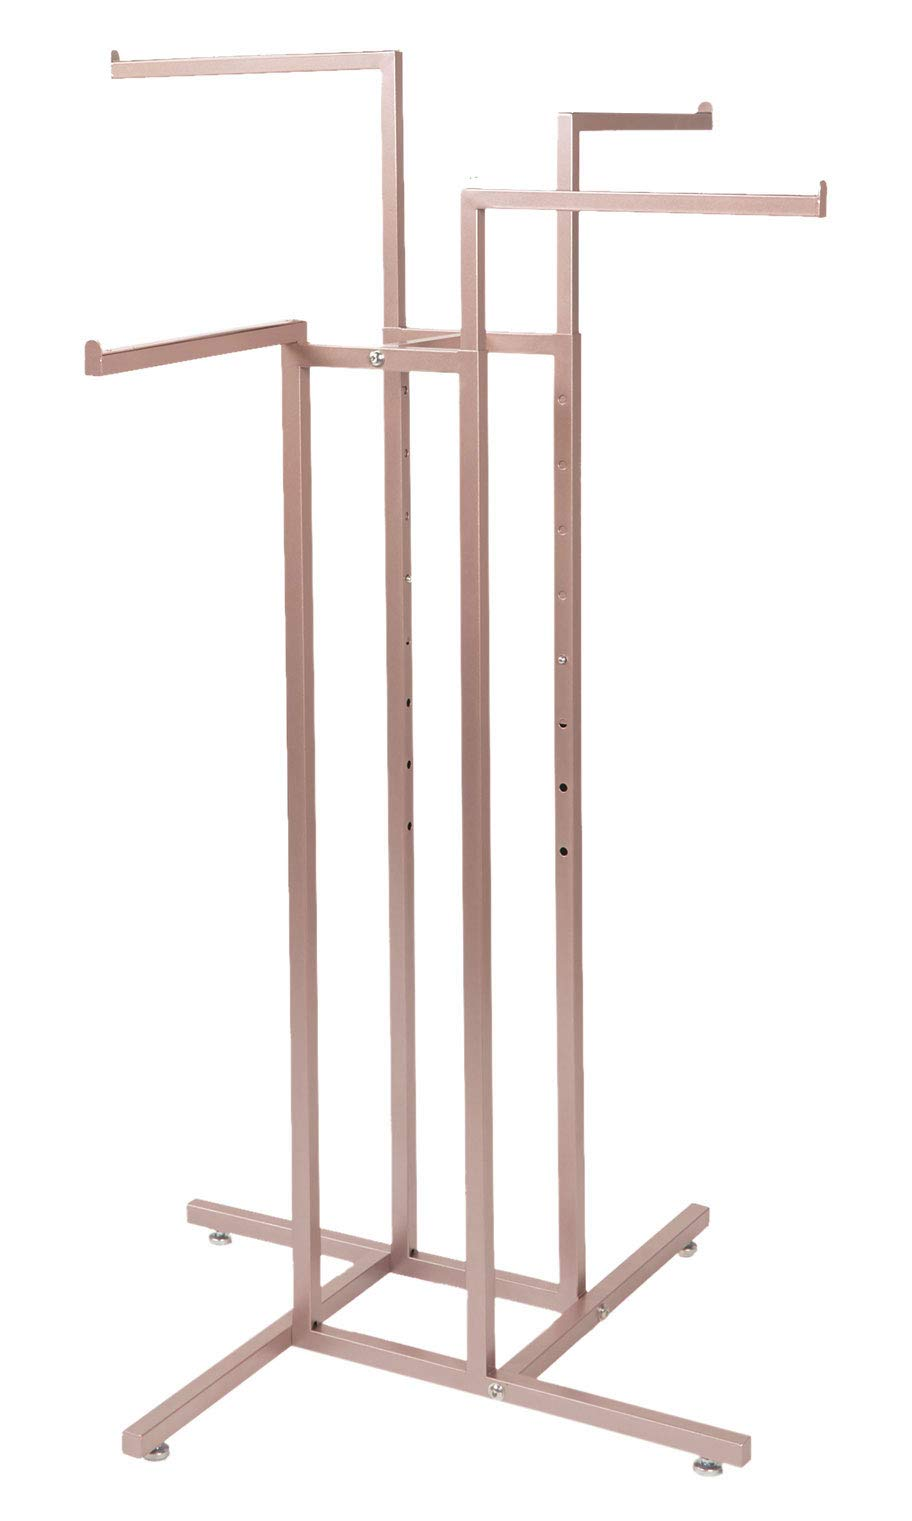 SSWBasics 4-Way Clothing Rack with Straight Arms (Rose Gold)